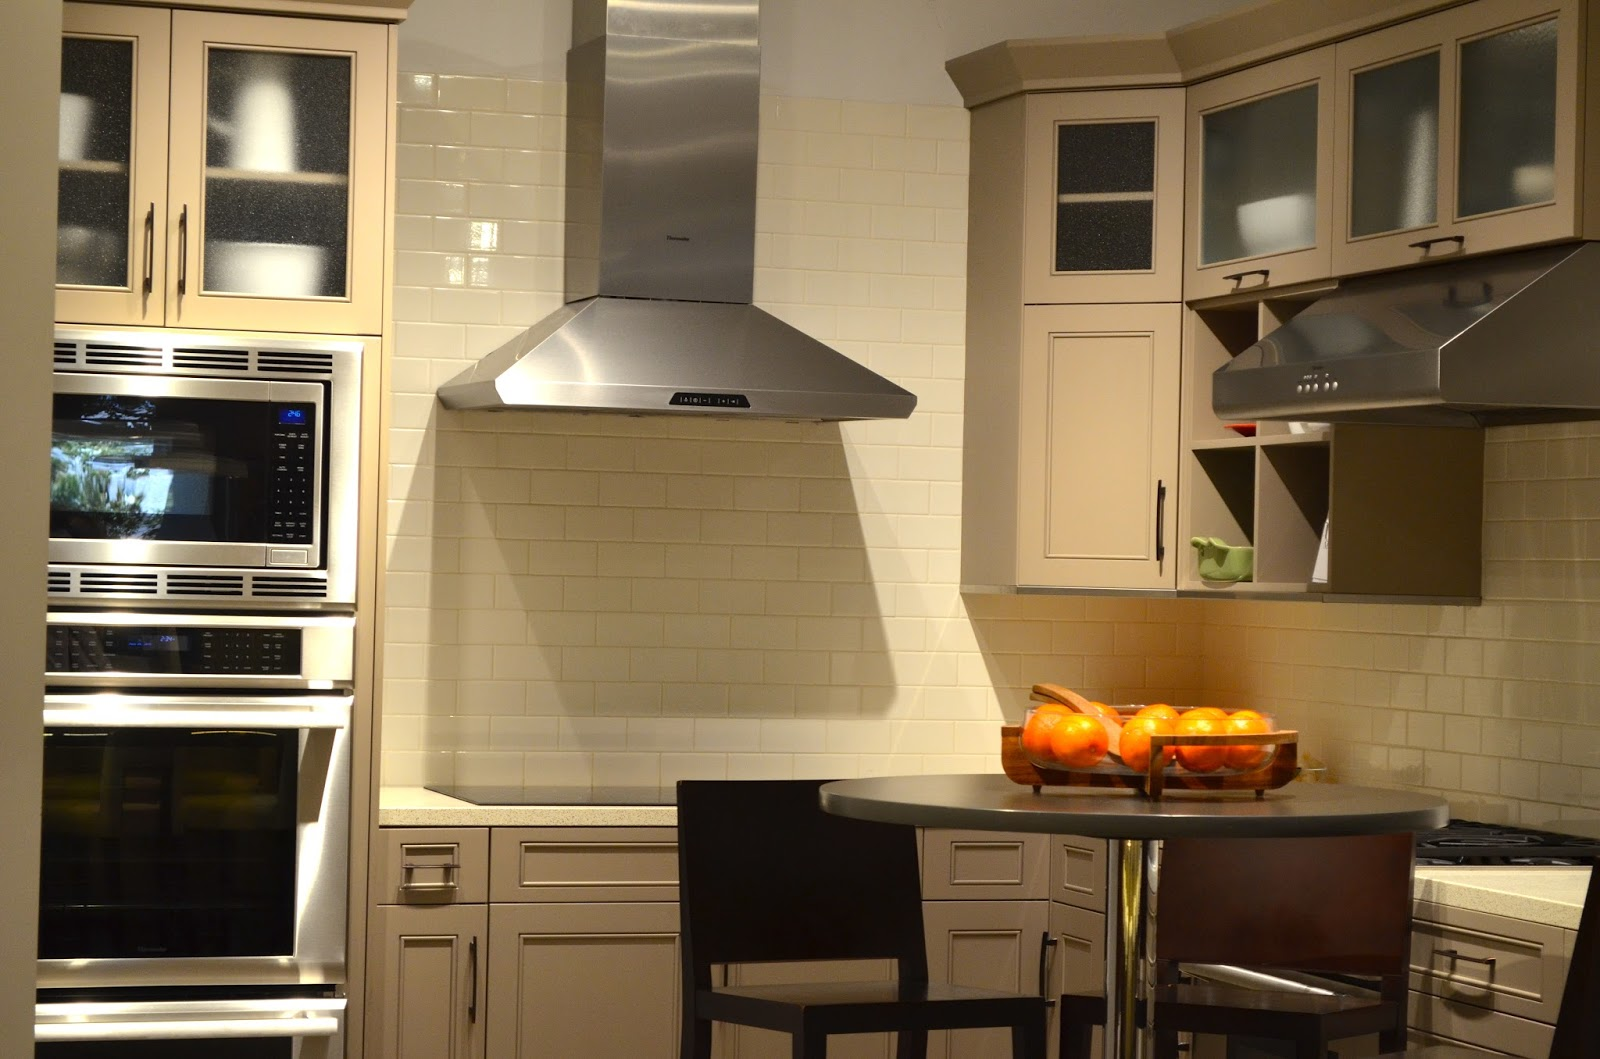 wonderful Stainless Steel Kitchen Exhaust Hoods #2: exhaust fan.